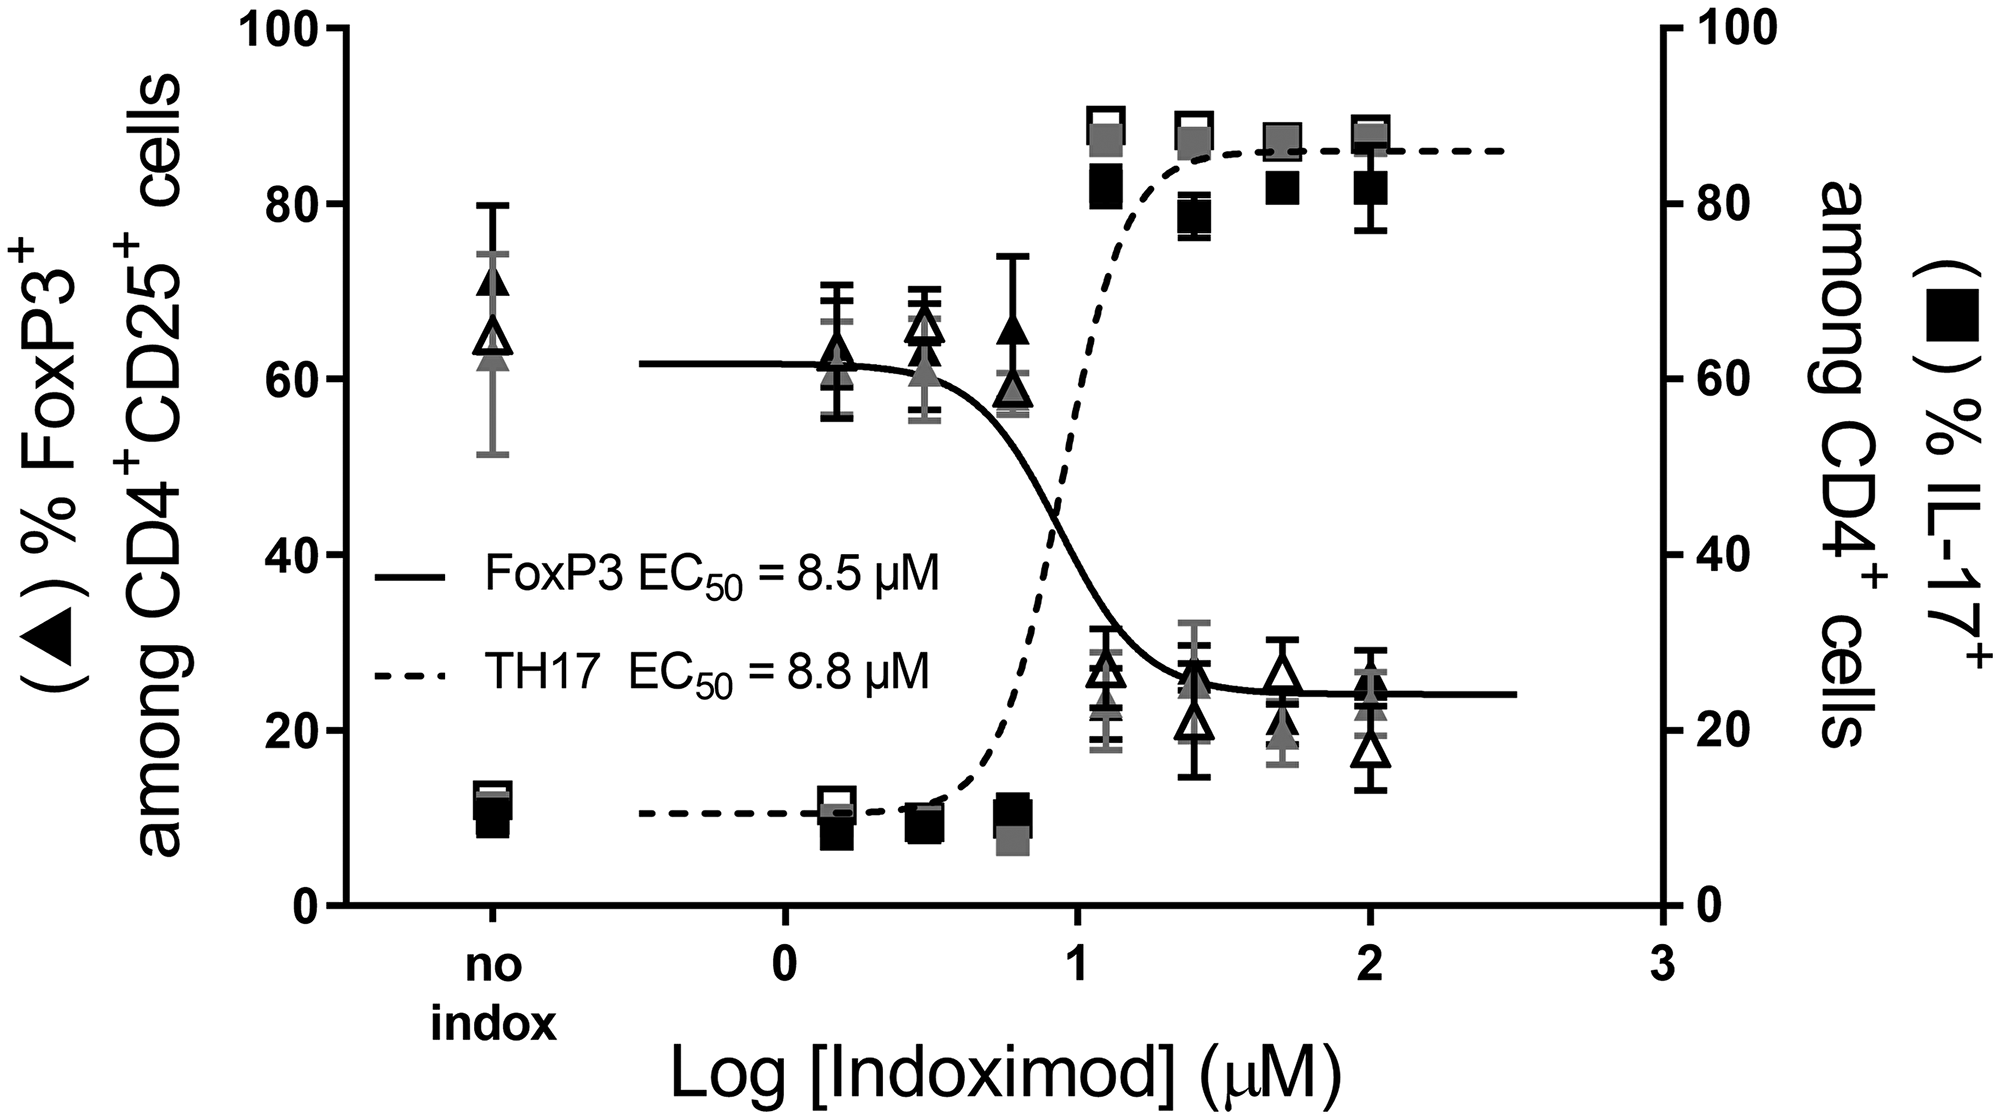 Indoximod favors CD4+ T cell differentiation to a TH17 helper phenotype while inhibiting differentiation to a Treg phenotype.